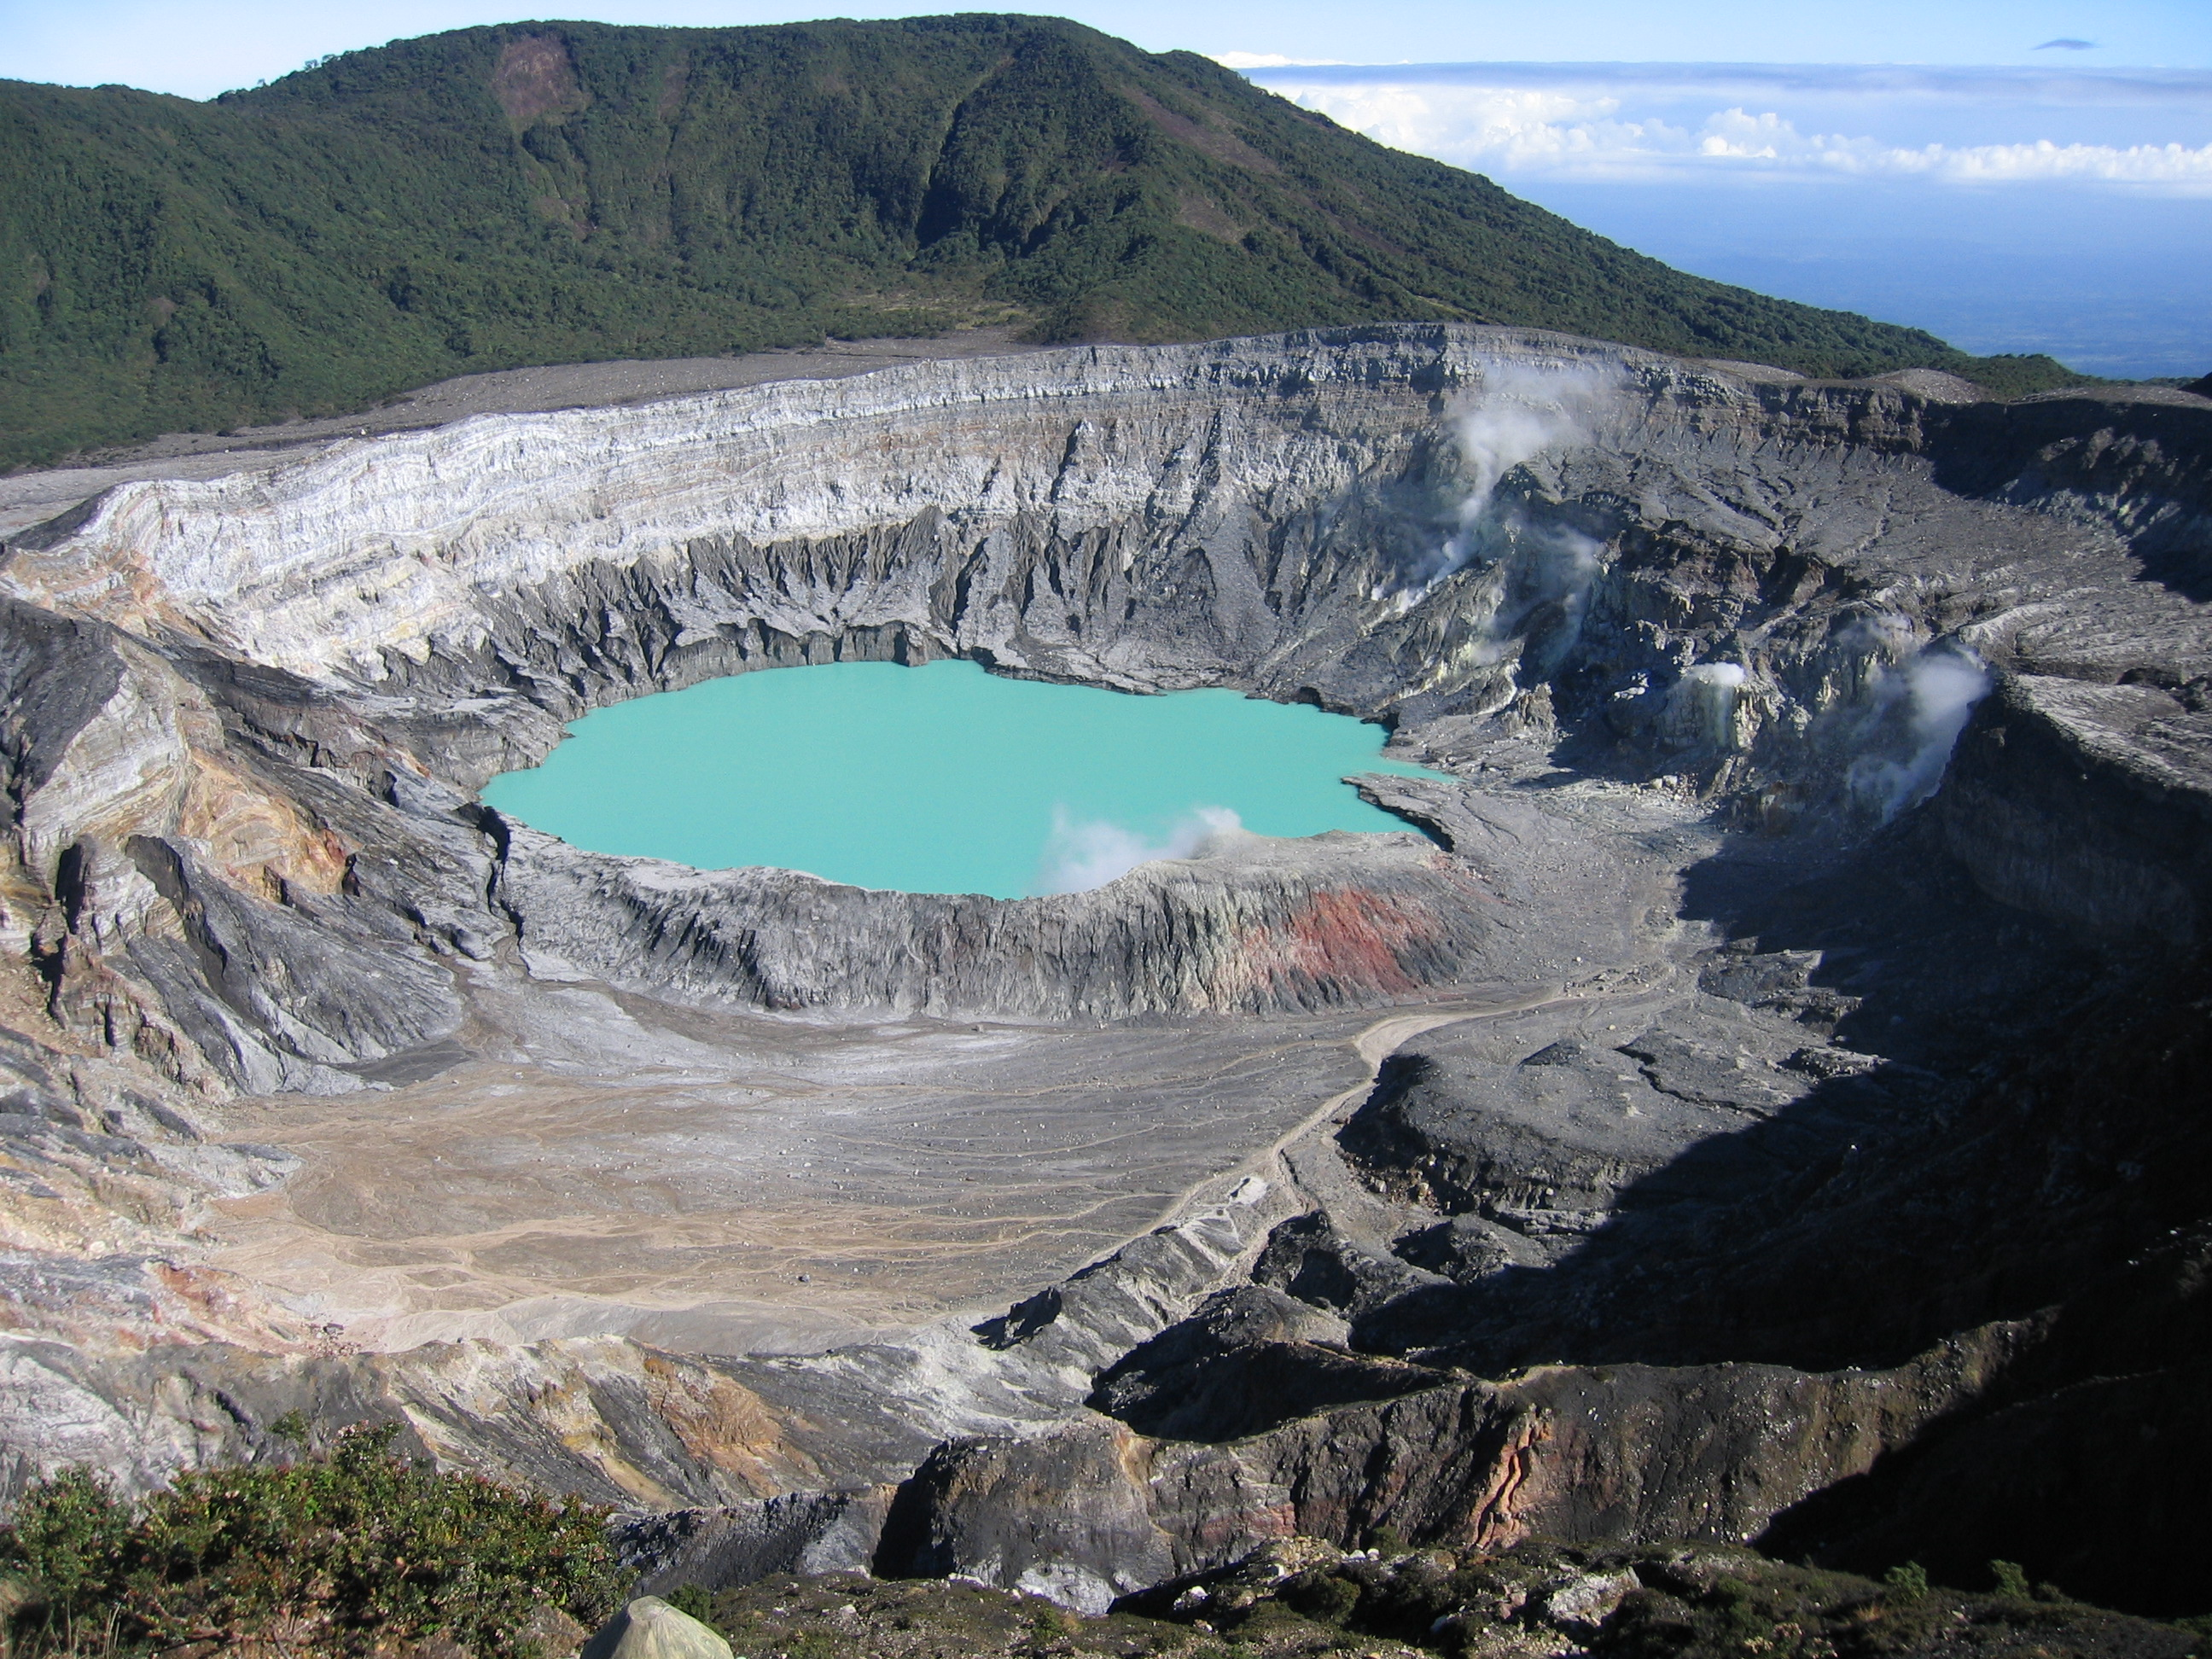 File:Poas crater.jpg - Wikimedia Commons